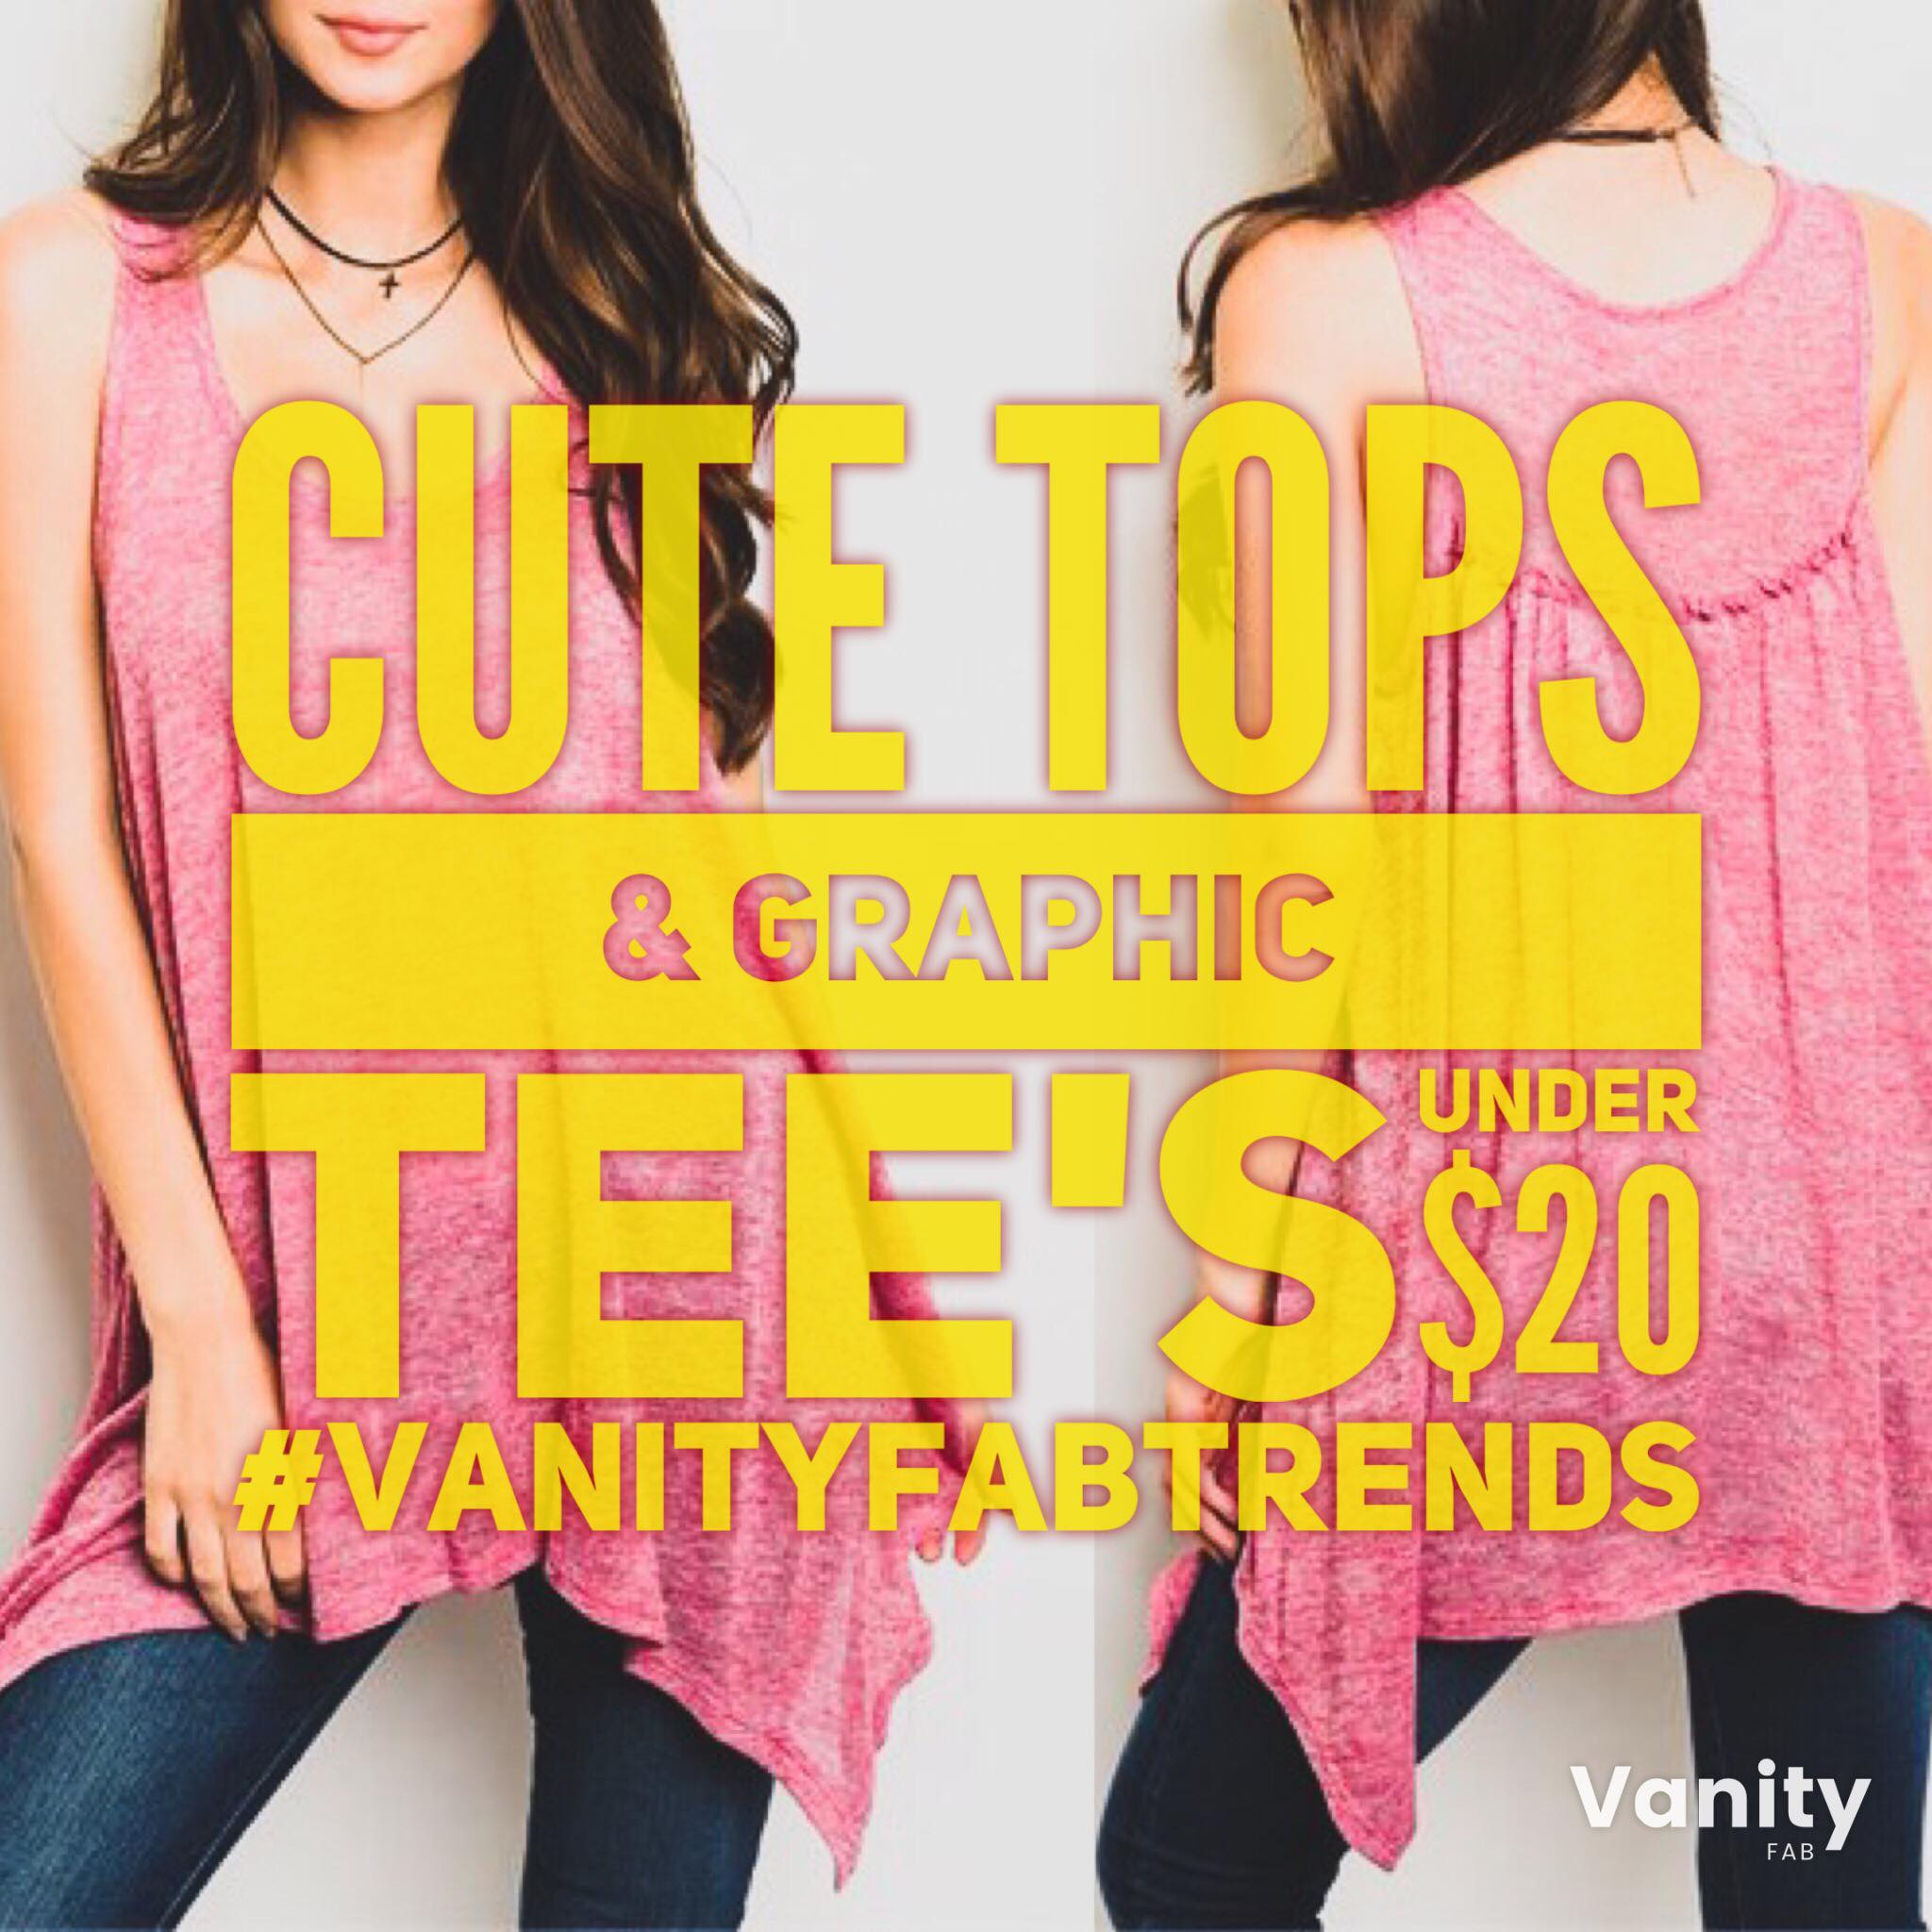 Shop Women's Clothing for Low Prices!